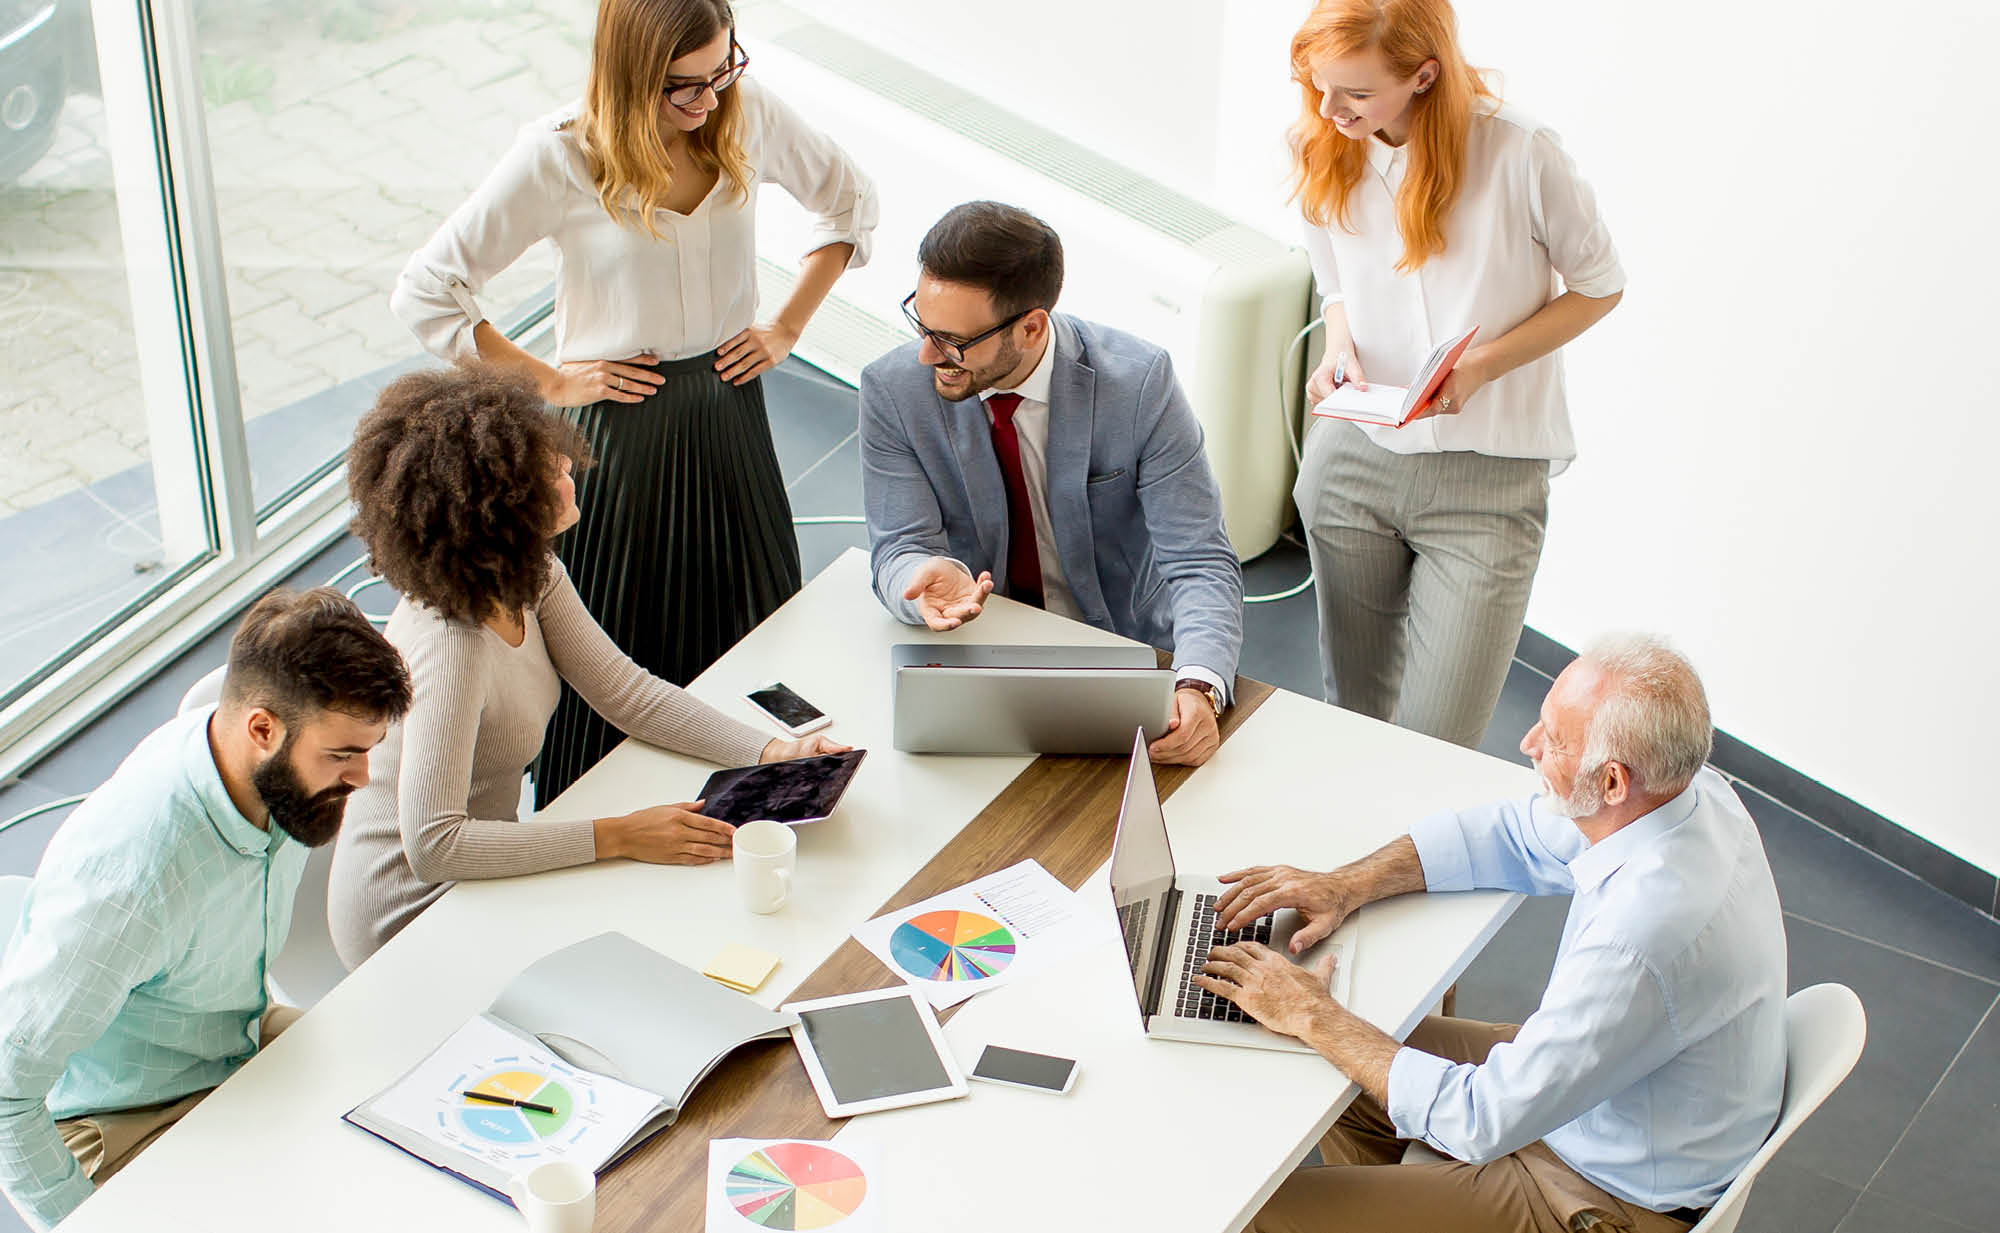 Baby Boomers To Gen Z: What To Know About Employee